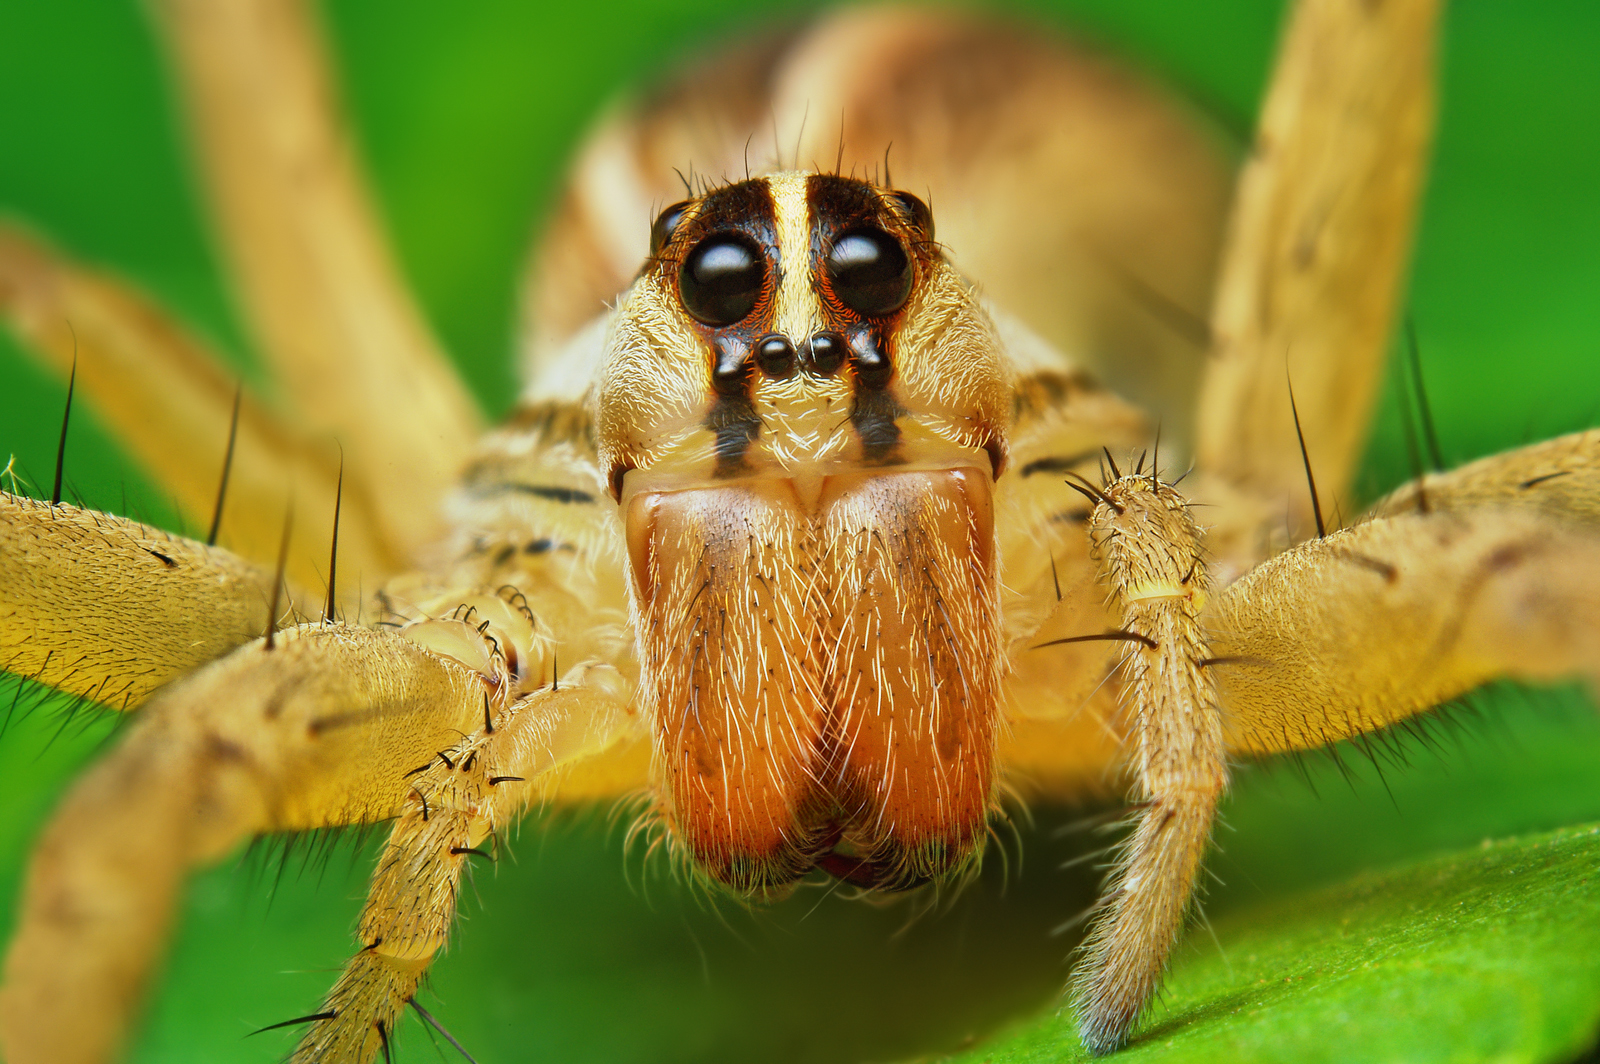 Spider close-up: Female Rabid Wolf Spider